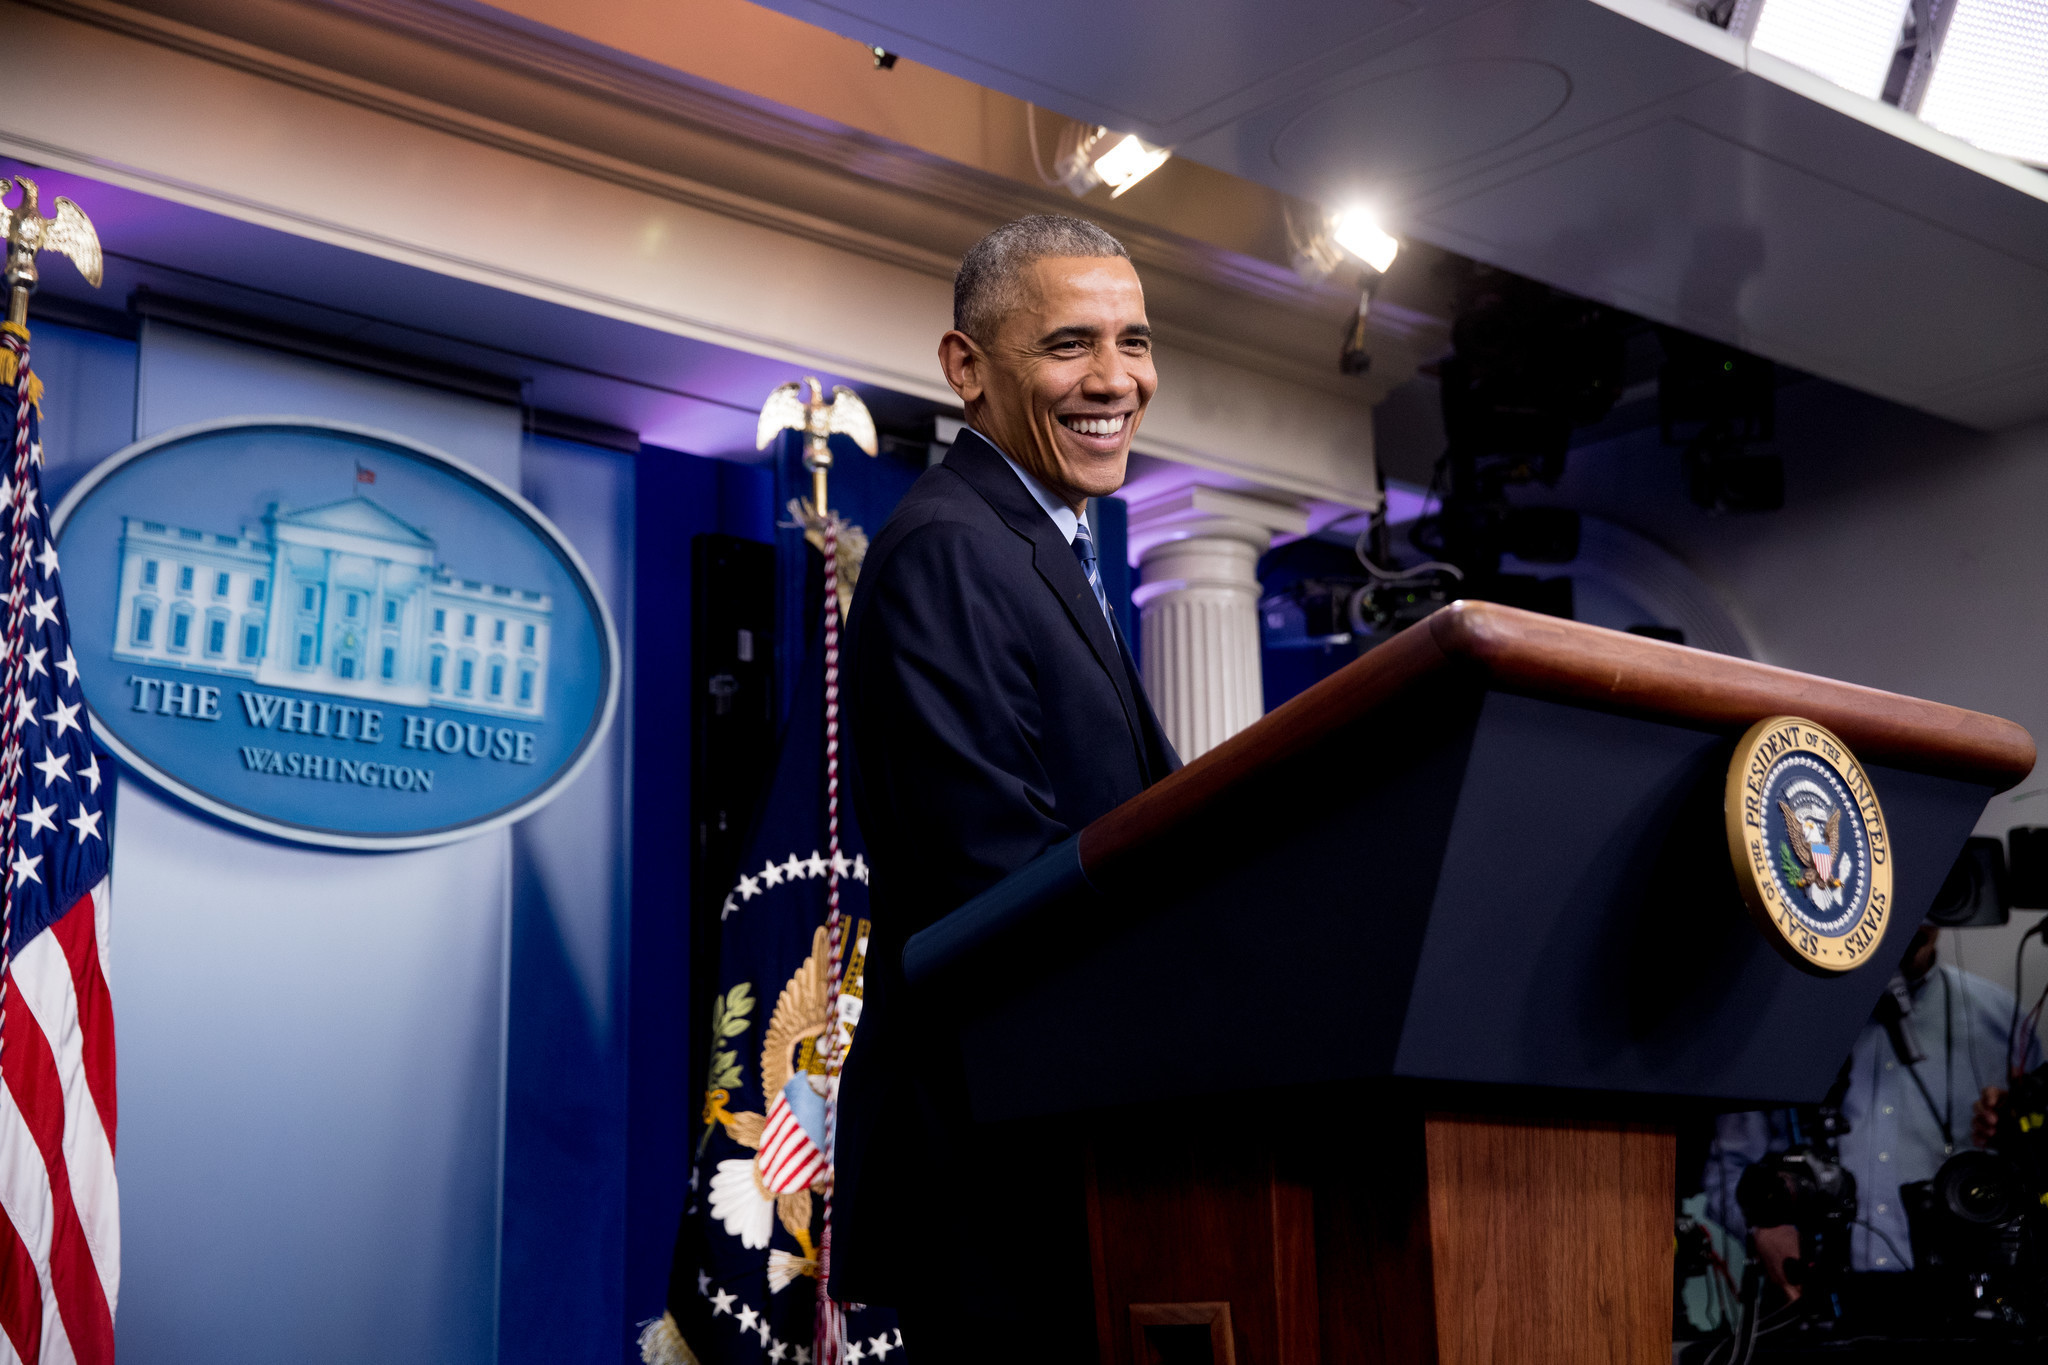 ebd9b019d4 President Obama confirmed what many political and literary observers have  long assumed  After he leaves office